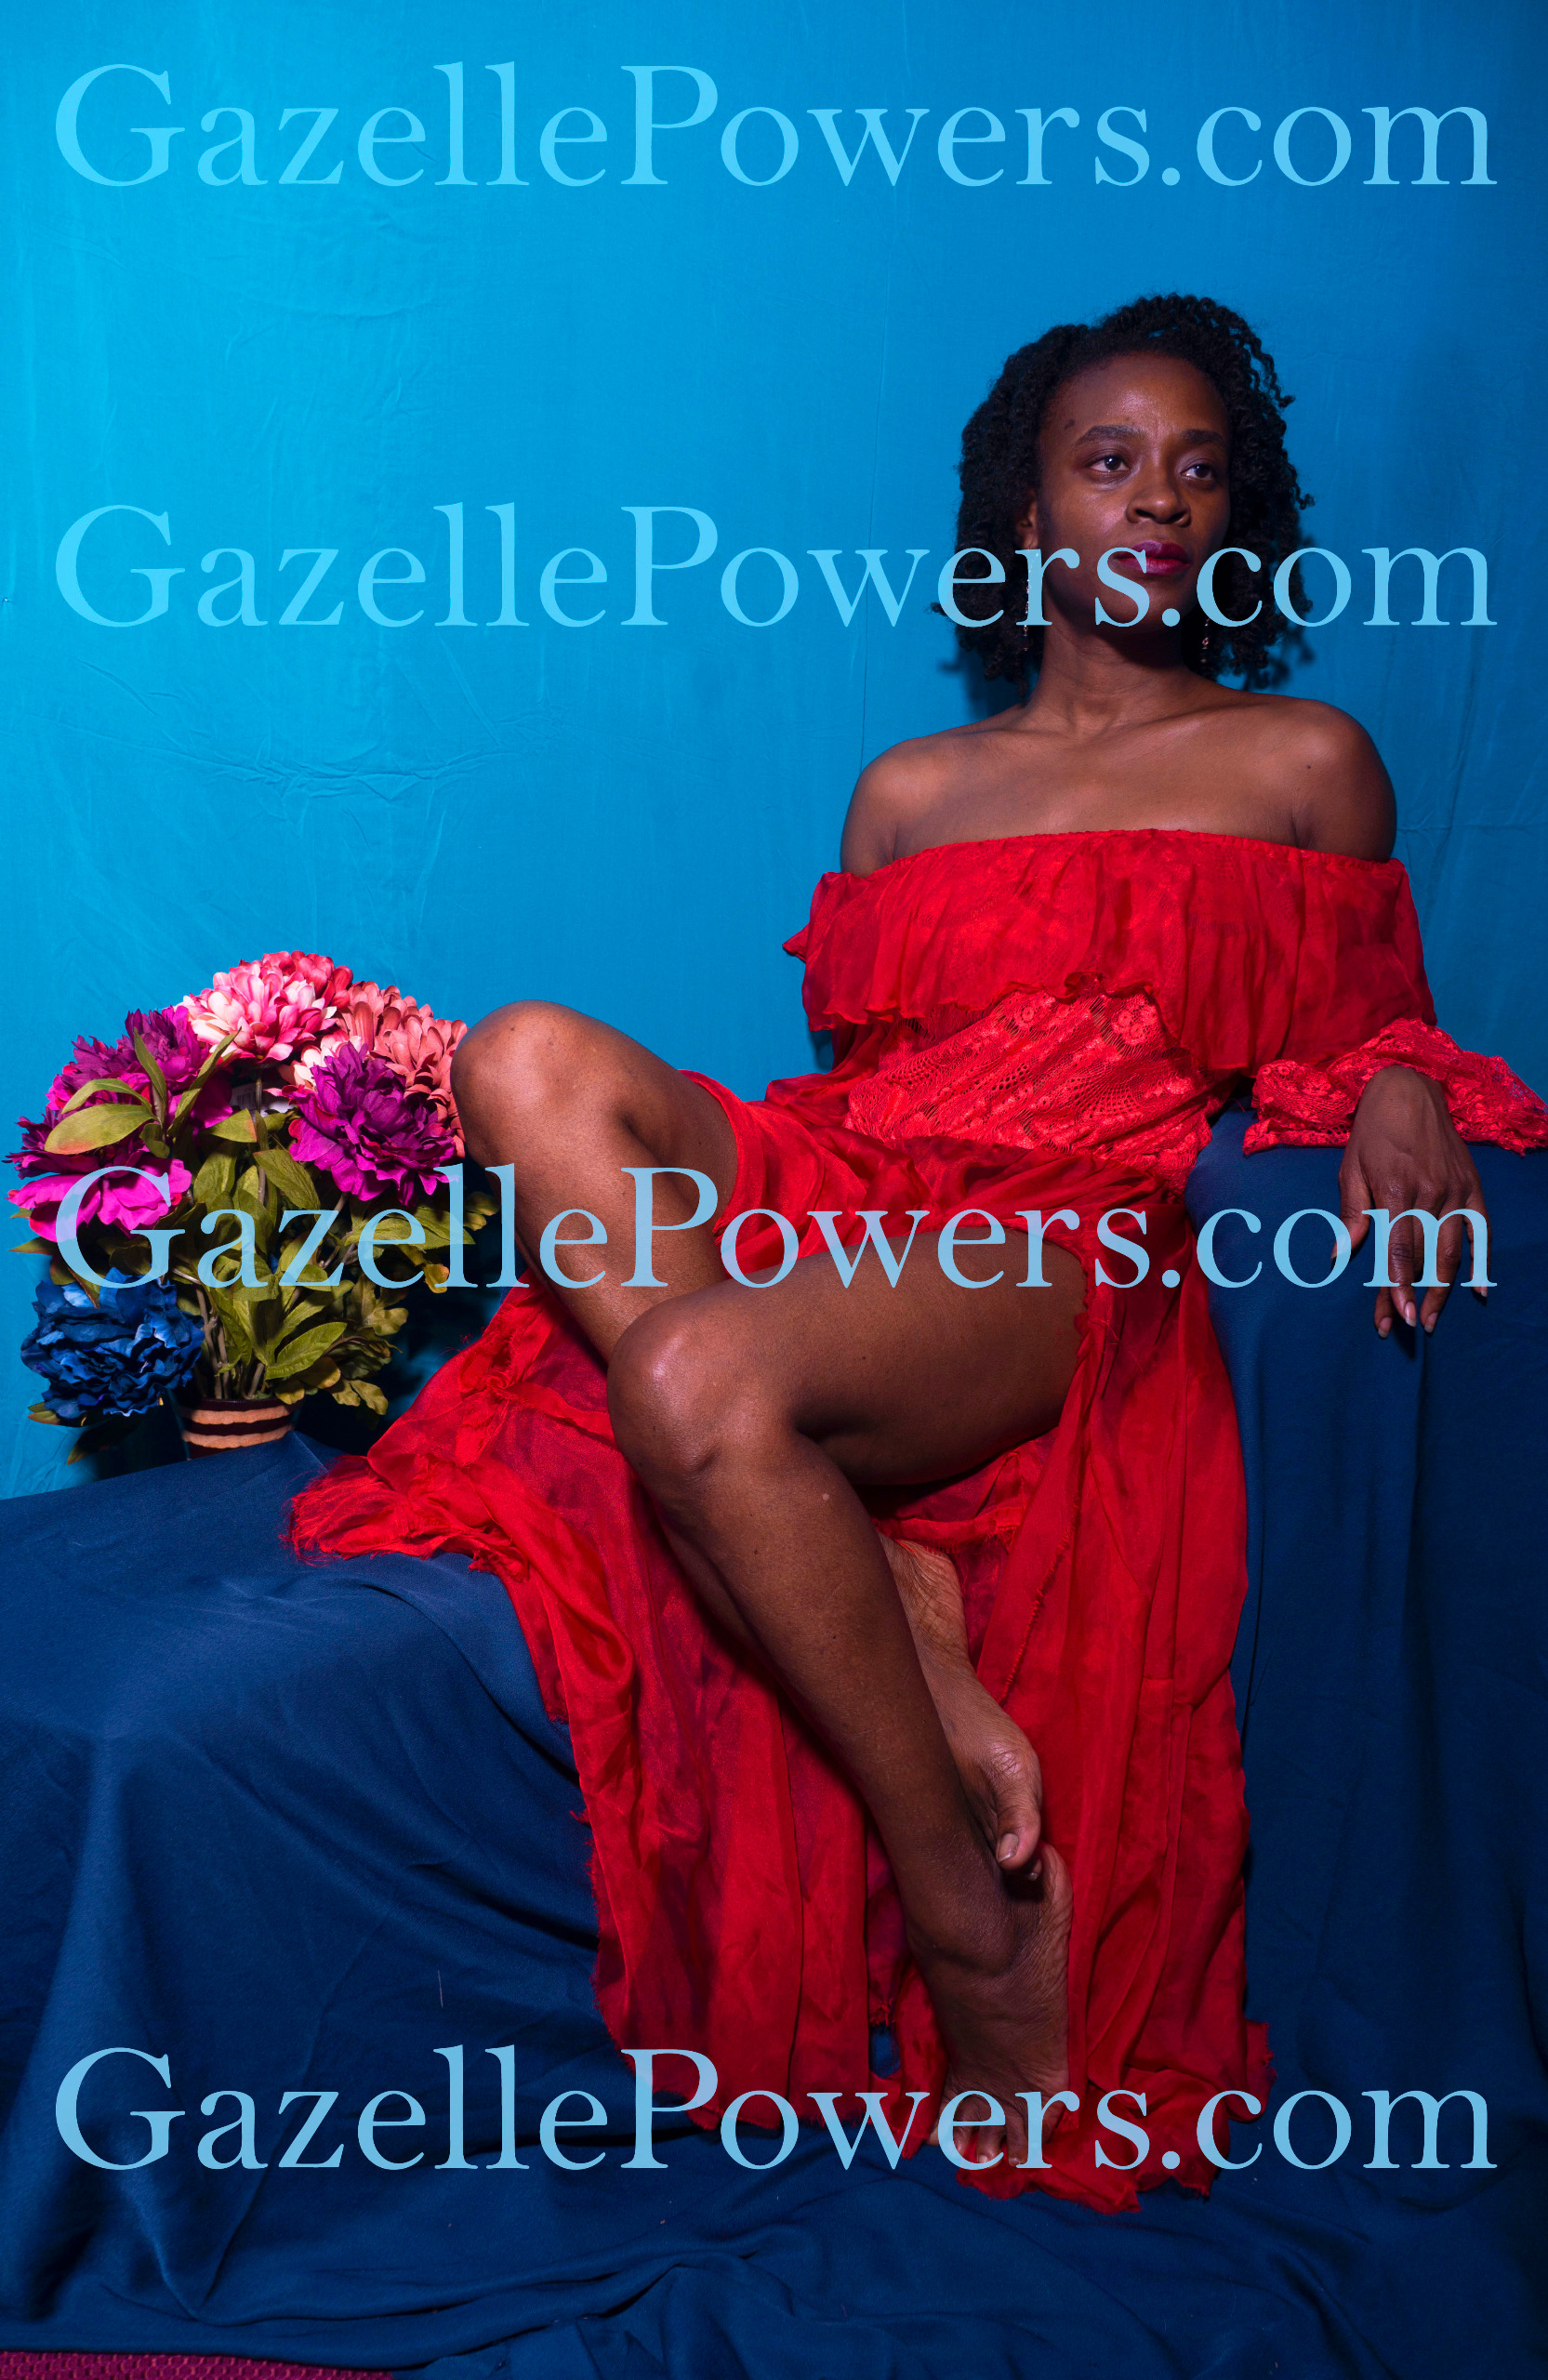 July 12th Session - Lady in Red #3